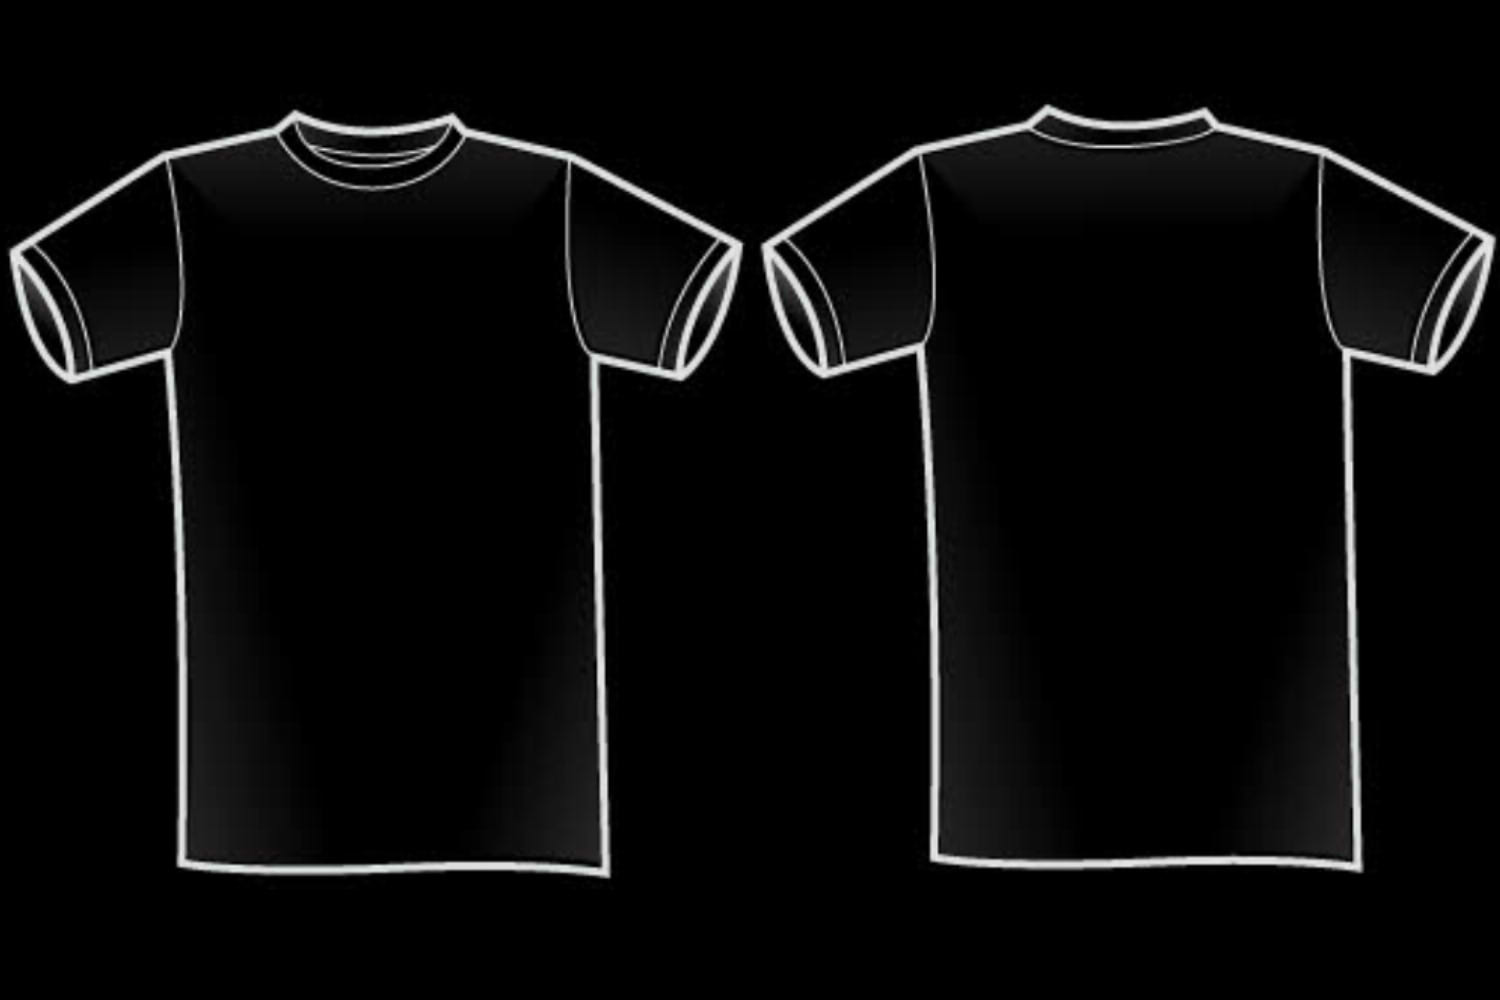 Black t shirt vector front and back - Plain Black T Shirt 36 Widescreen Wallpaper